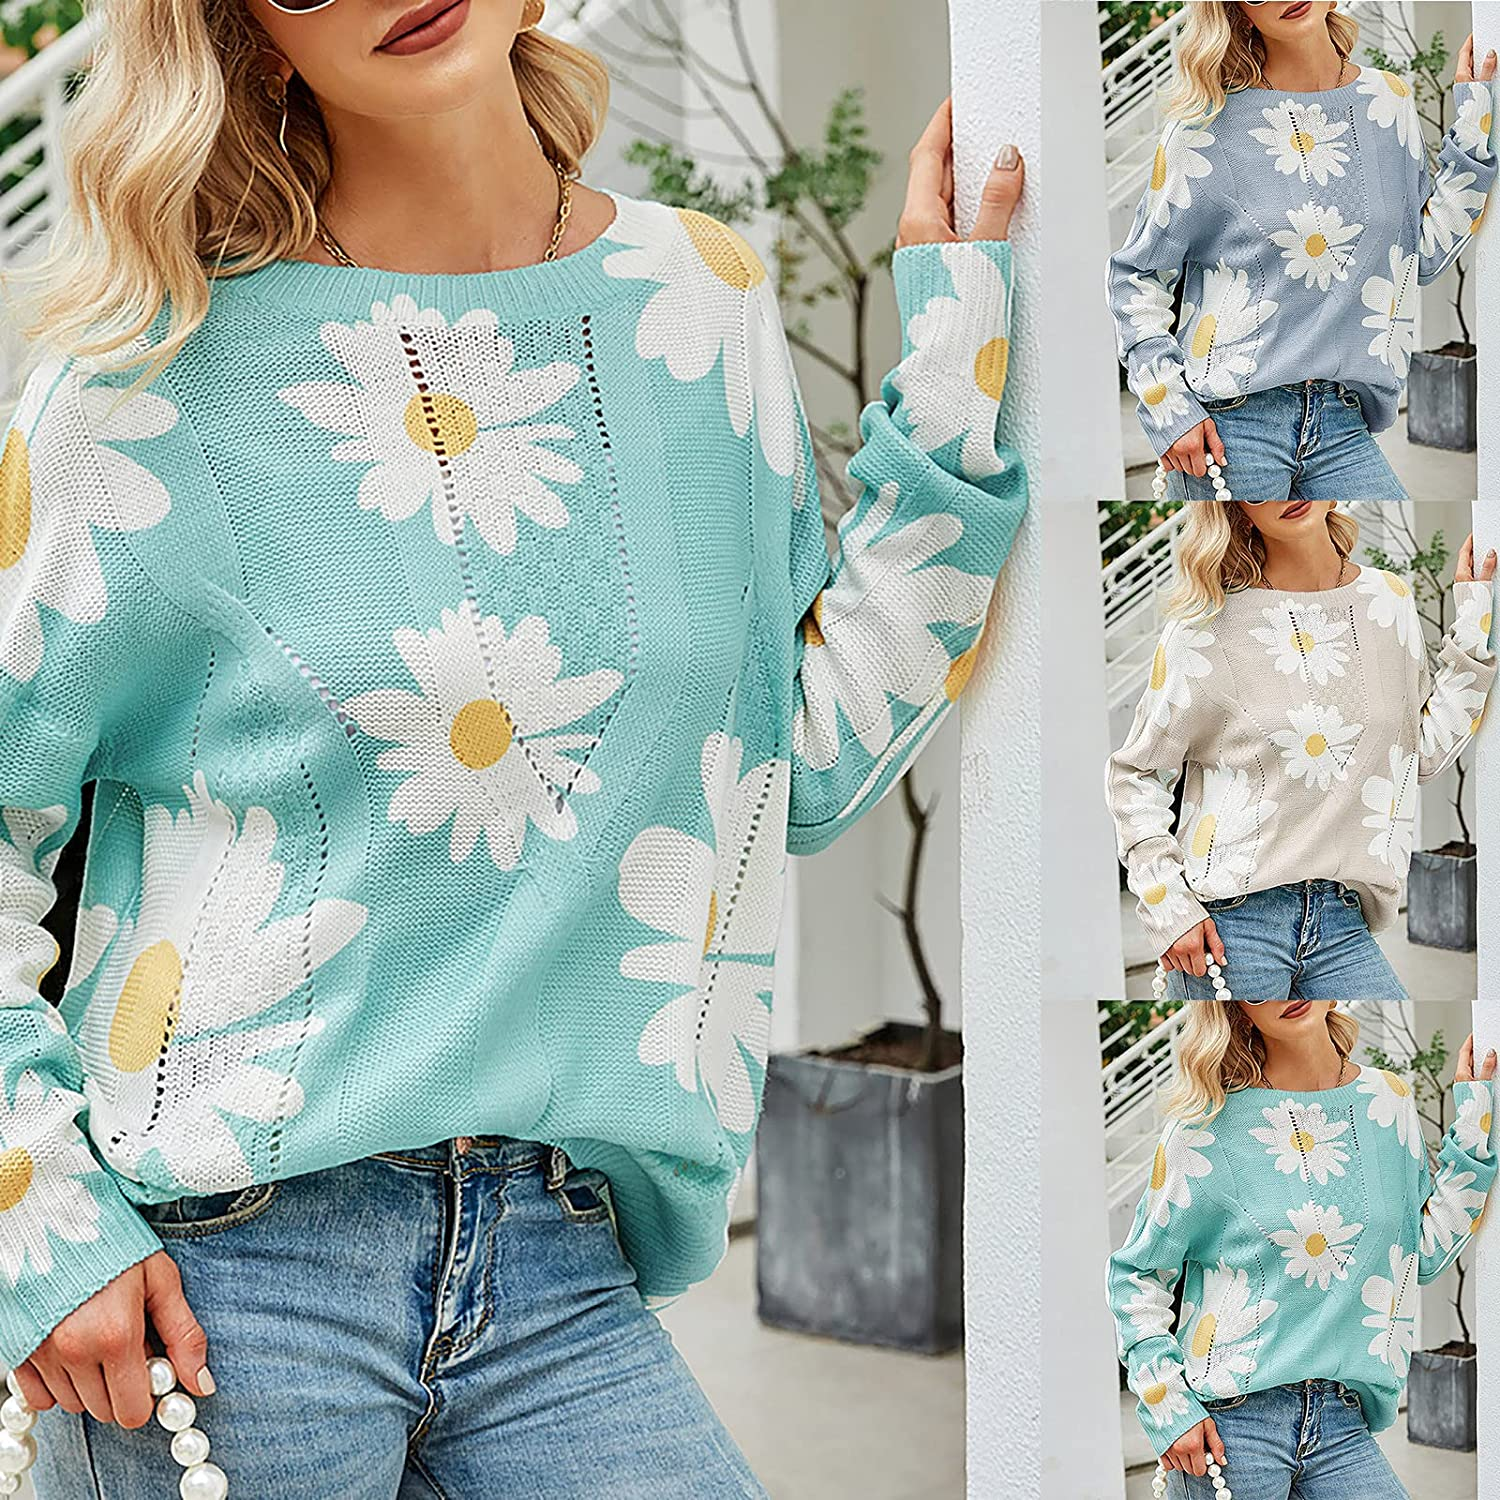 Women's Fashion Sweaters Casual O-Neck Daisy Printed Blouse Tees Loose Long Sleeve Hoodies Pullover